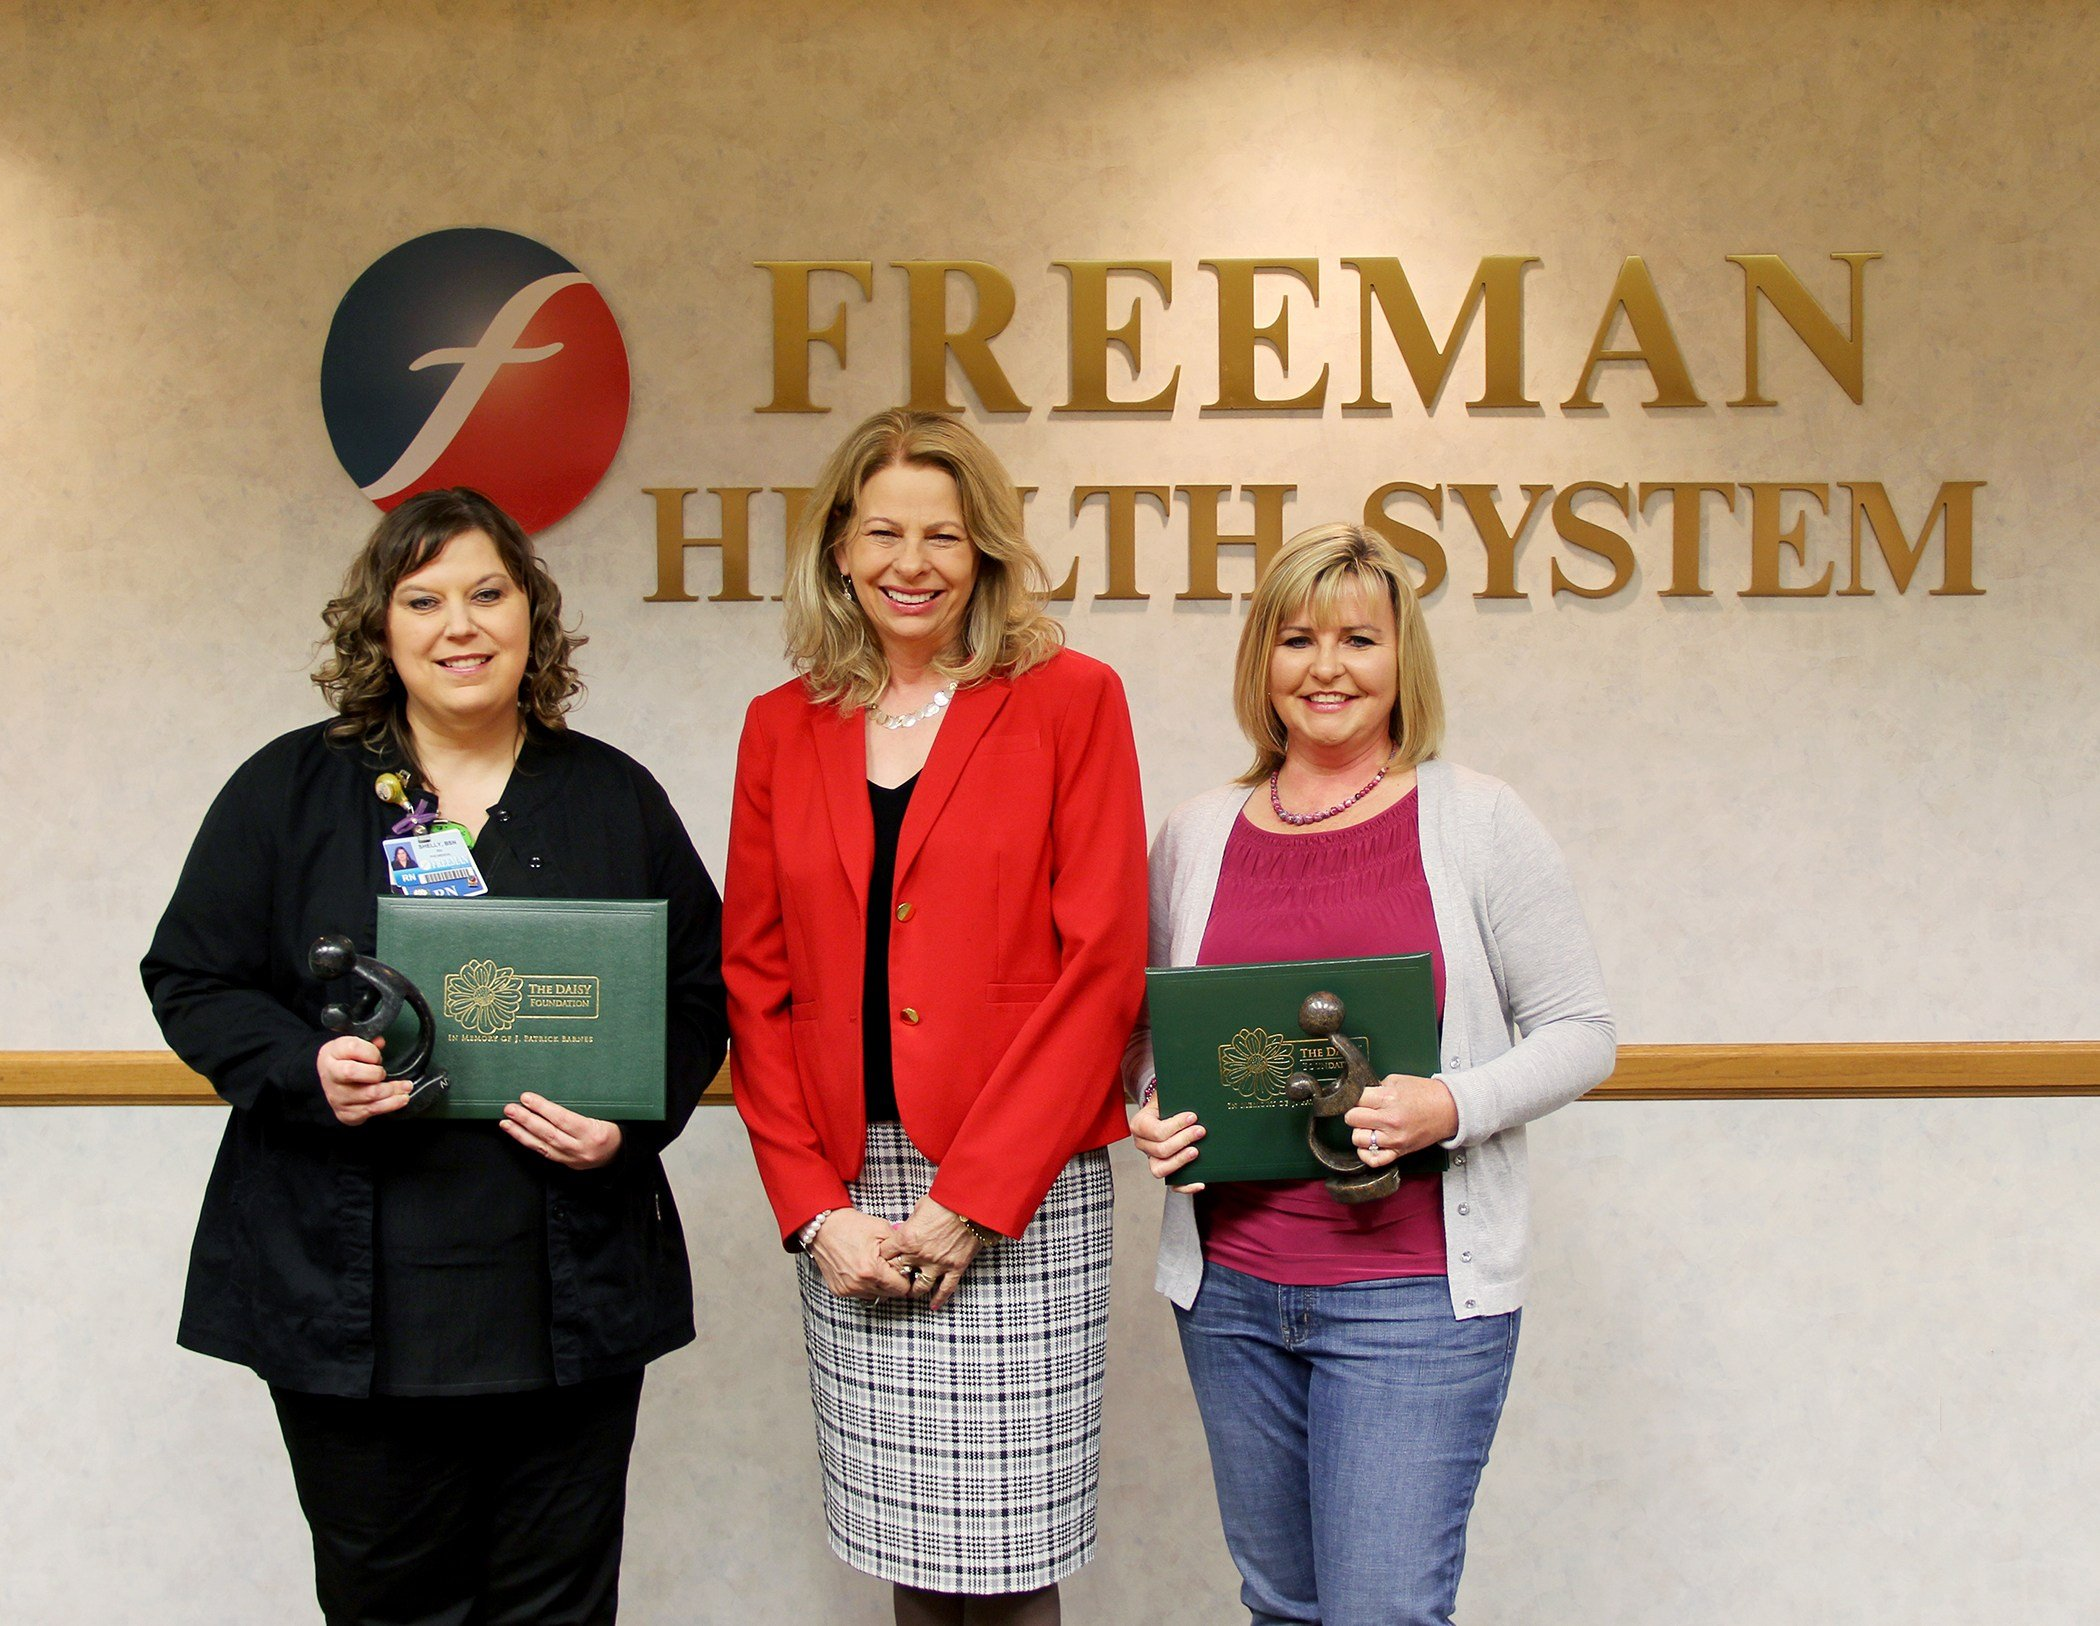 (left to right) Shelly Shoemaker, RN, Freeman Medical/oncology; Paula F. Baker, Freeman President and Chief Executive Officer; and Stacy Pryor, RN, Freeman Emergency Department